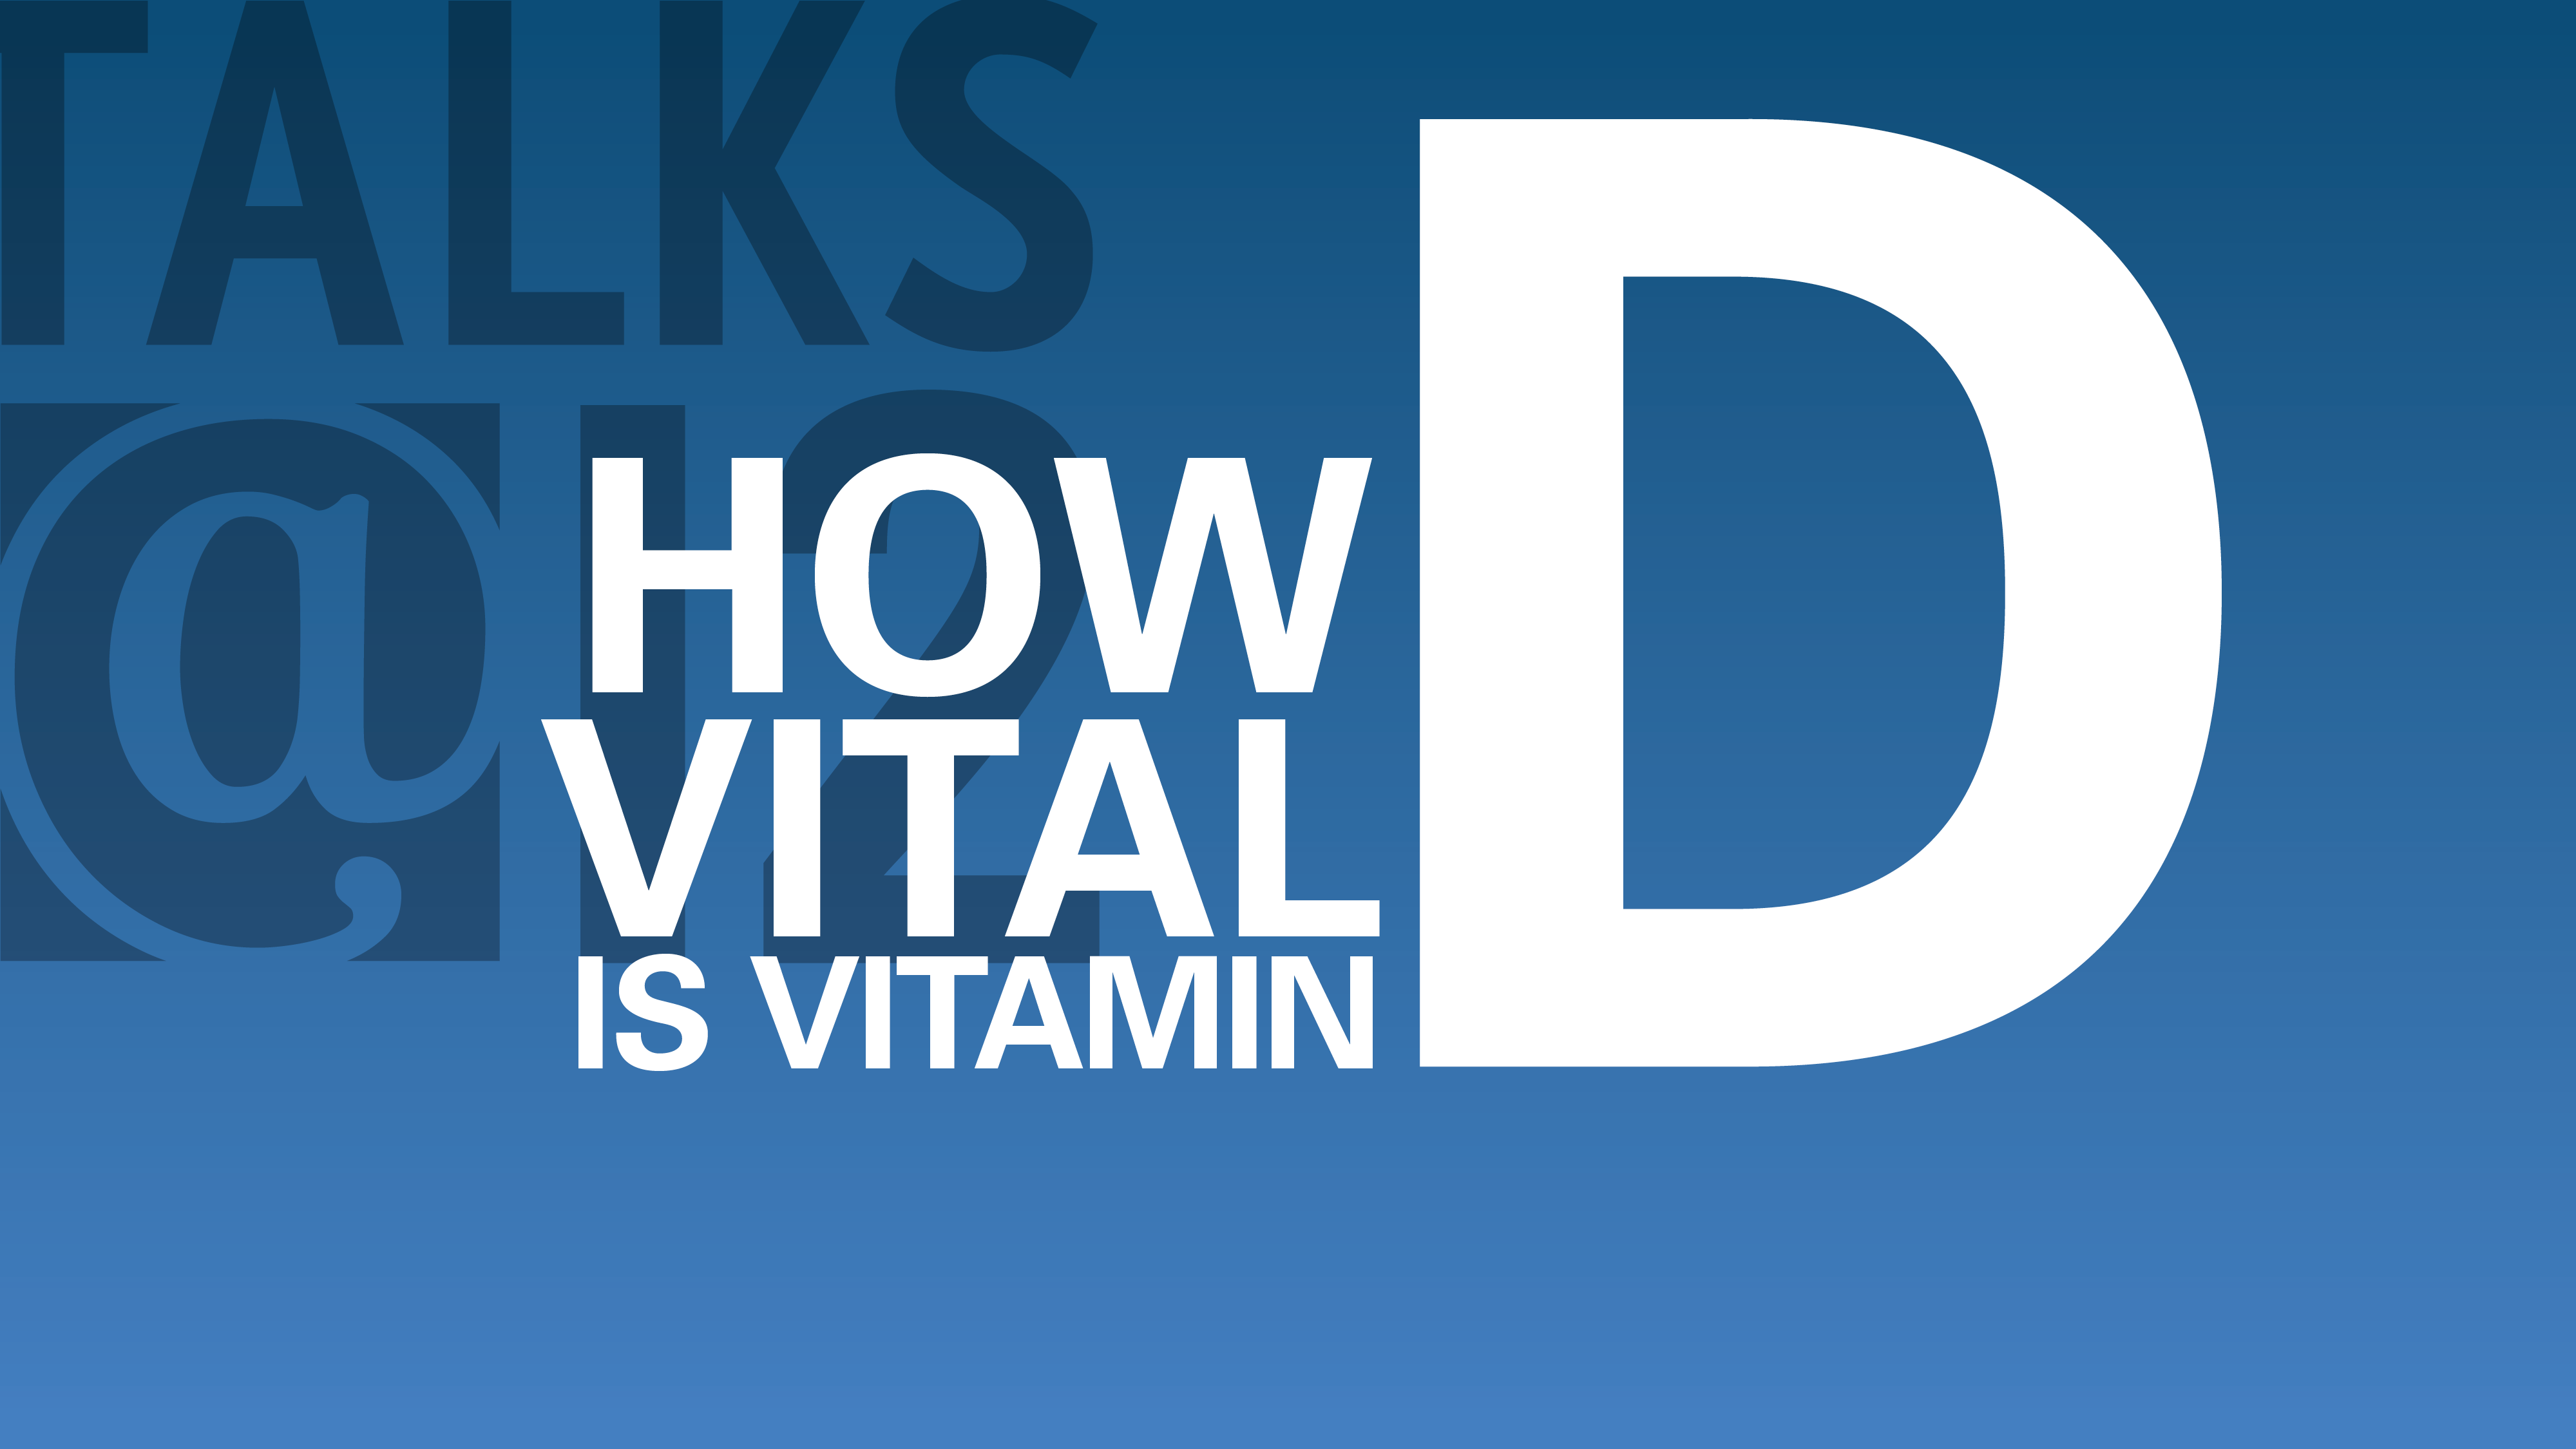 How Vital Is Vitamin D?